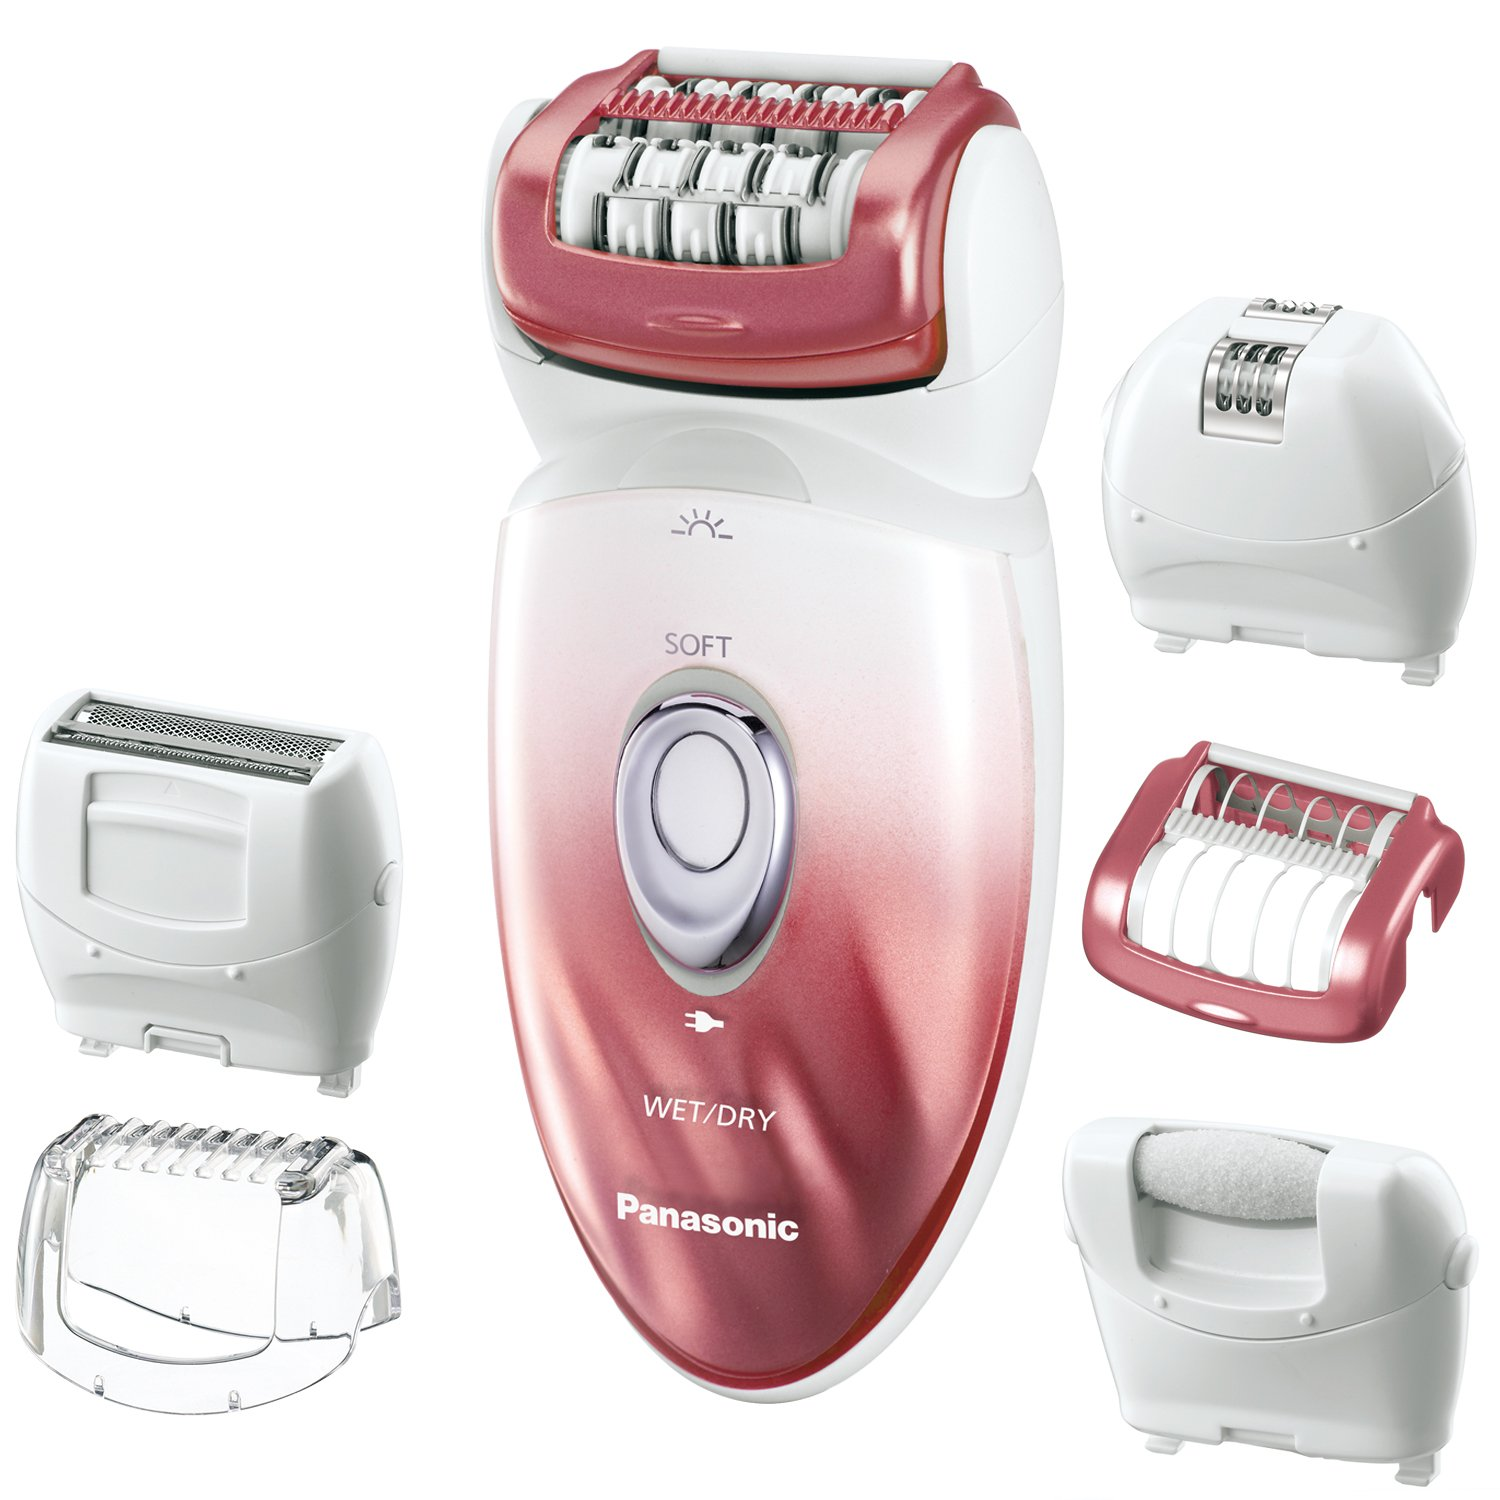 Panasonic ESED50 Multi-Functional Wet/Dry Epilator and Shaver System, Gold/White ES-ED50-N